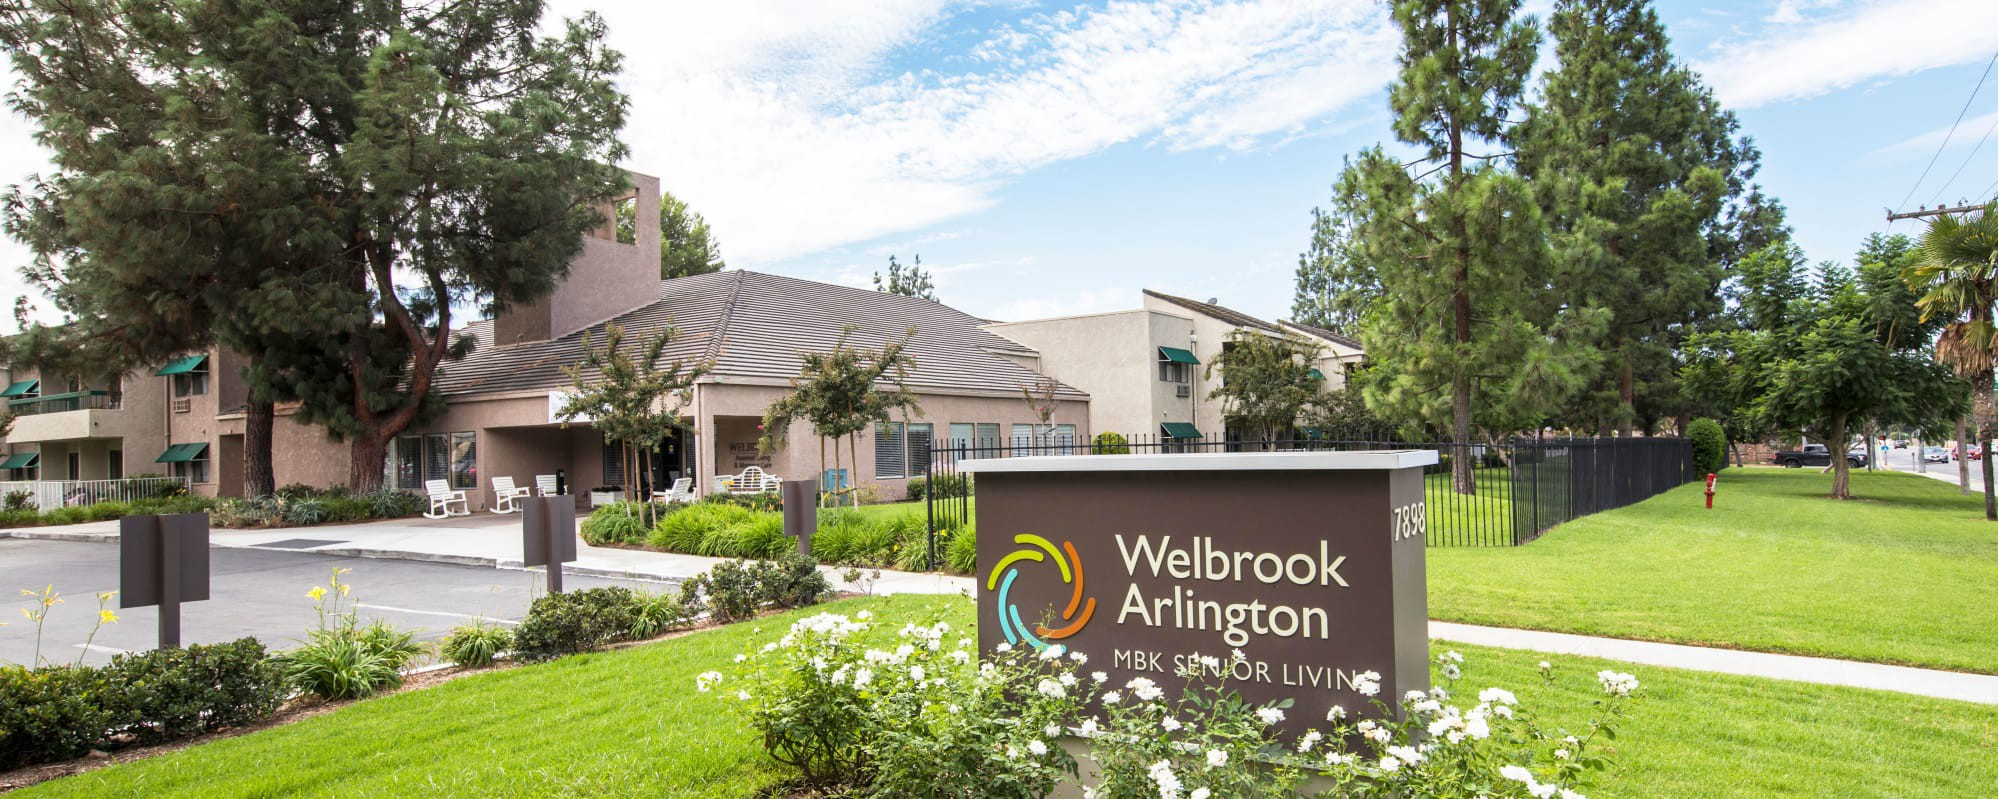 Apartments Near La Sierra Welbrook Arlington Independent and Assisted Senior Living for La Sierra University Students in Riverside, CA